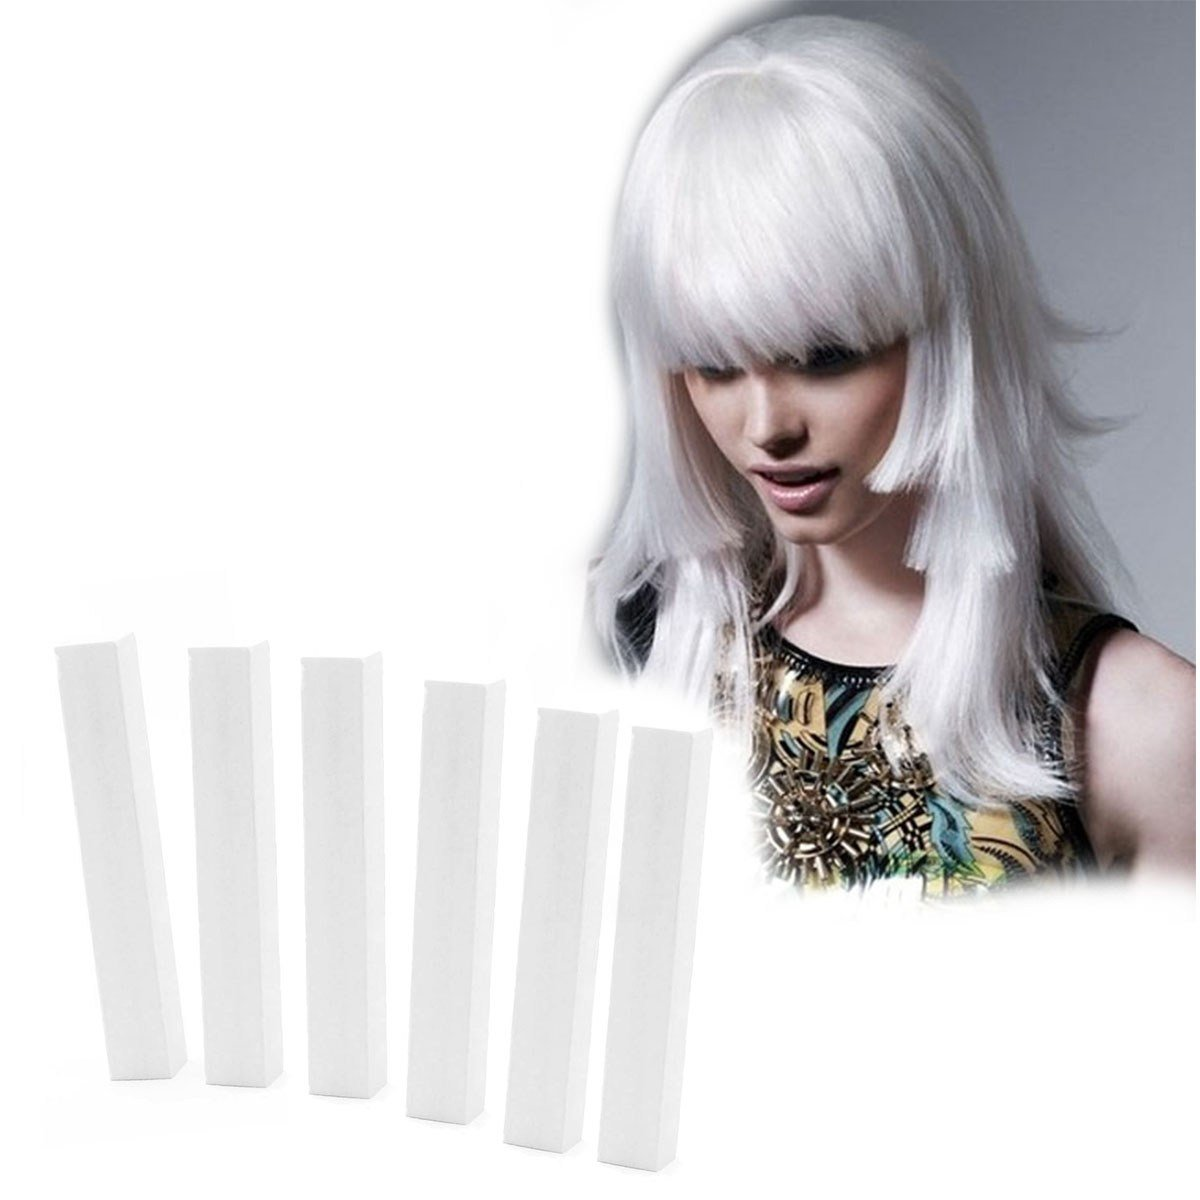 The Best Snow White Hair Dye 6 Frosty White Hair Chalks Hairchalk Pictures